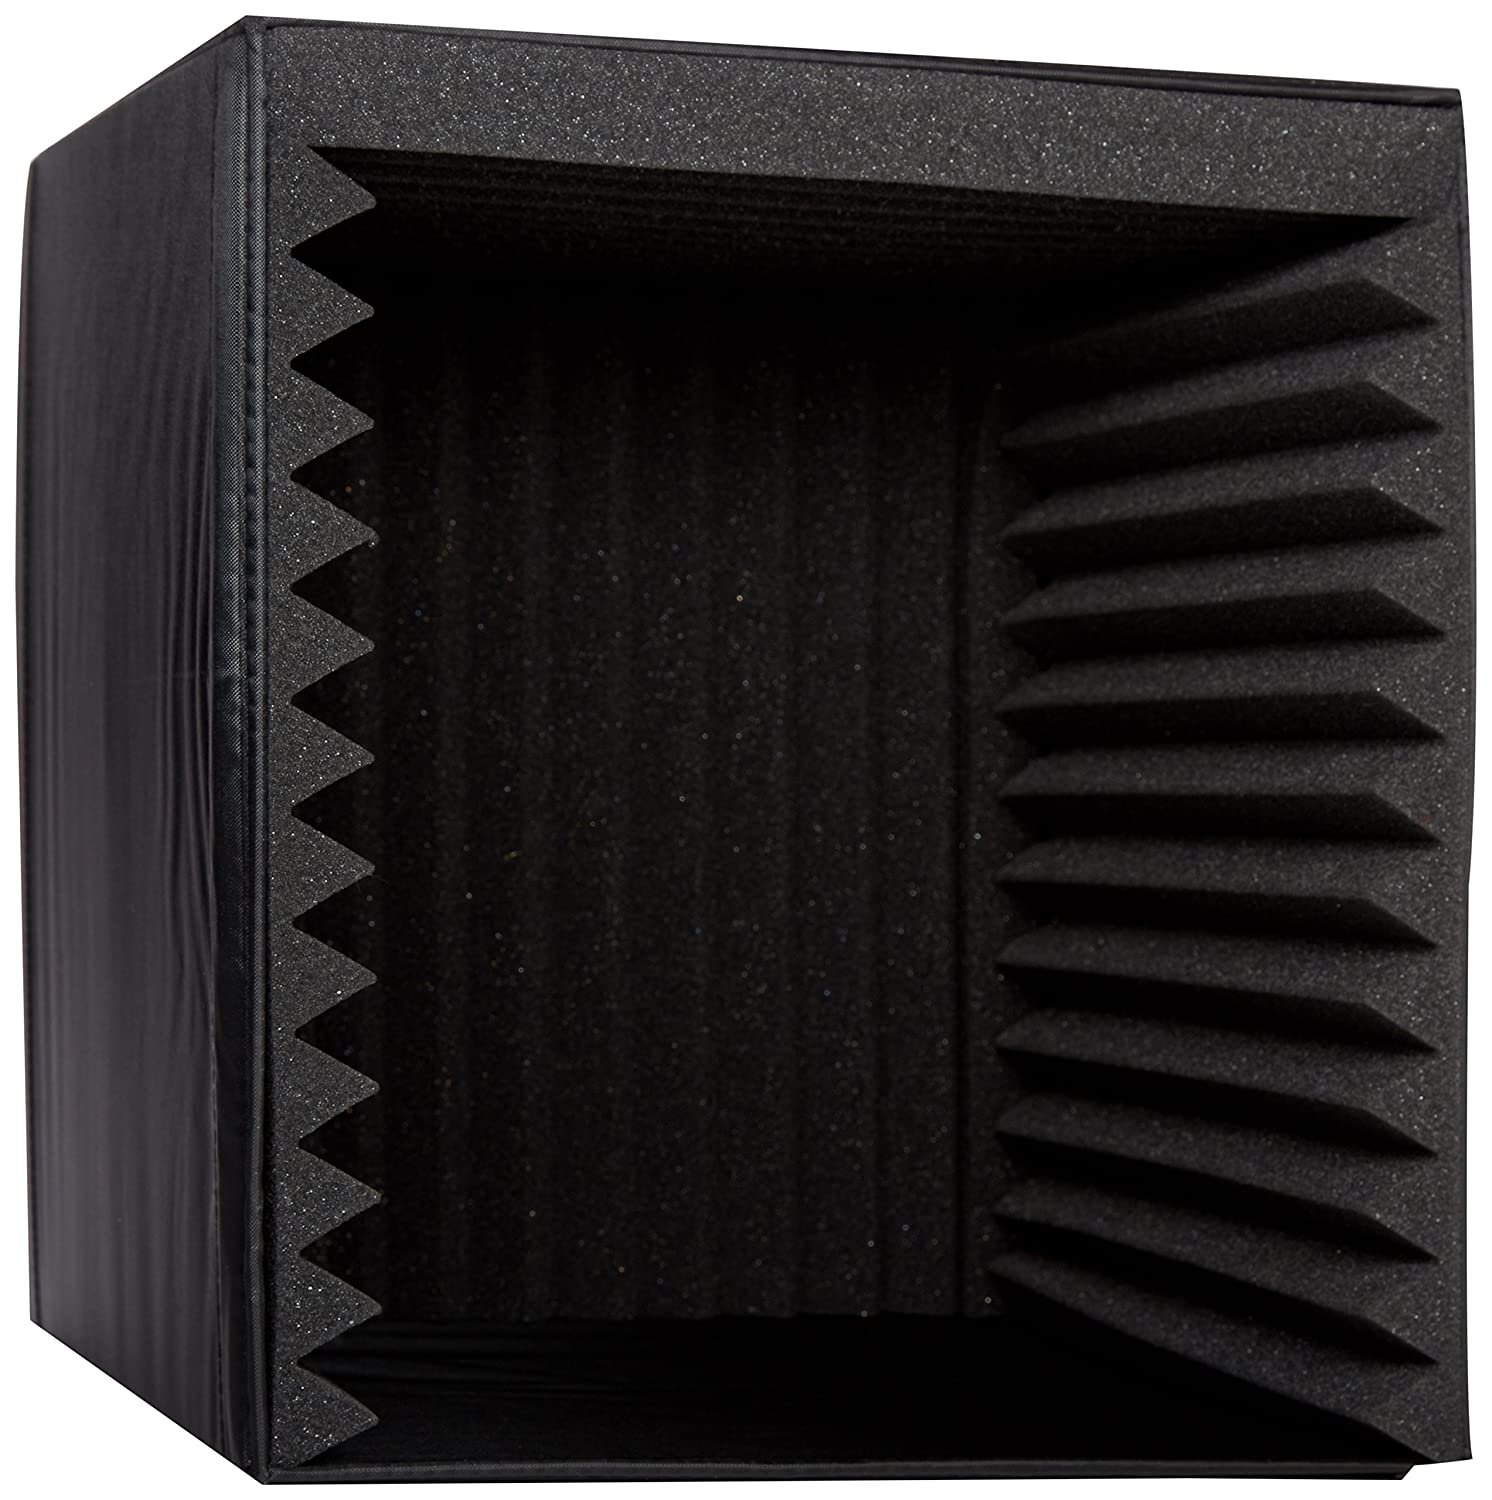 Pyle PSIB27 Sound Recording Booth Box, Studio Soundproofing Foam Shield Isolation Filter Cube Sound Around